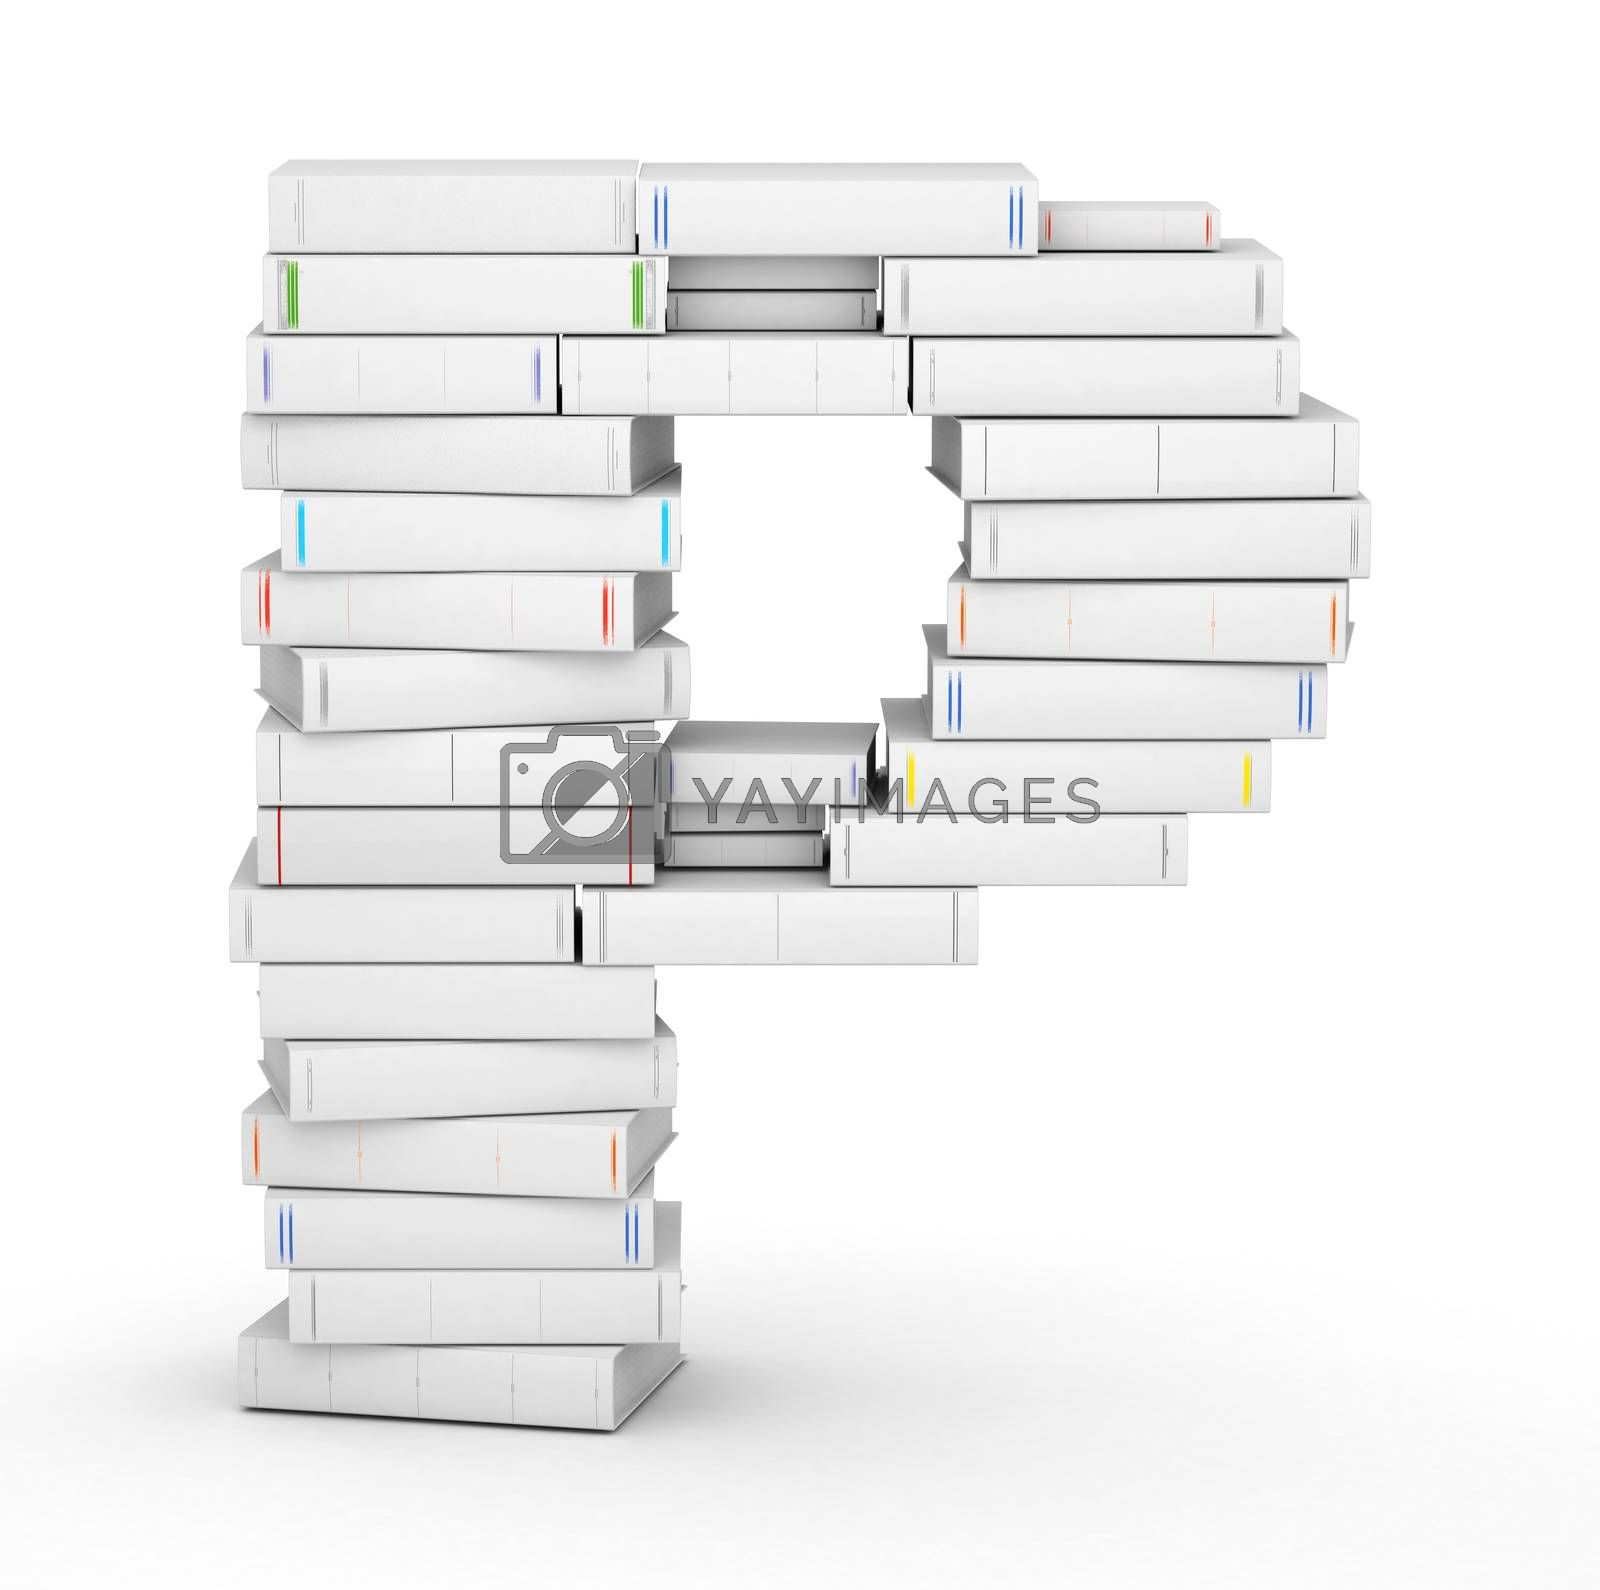 Royalty free image of Letter P, stacked from blank books by iunewind